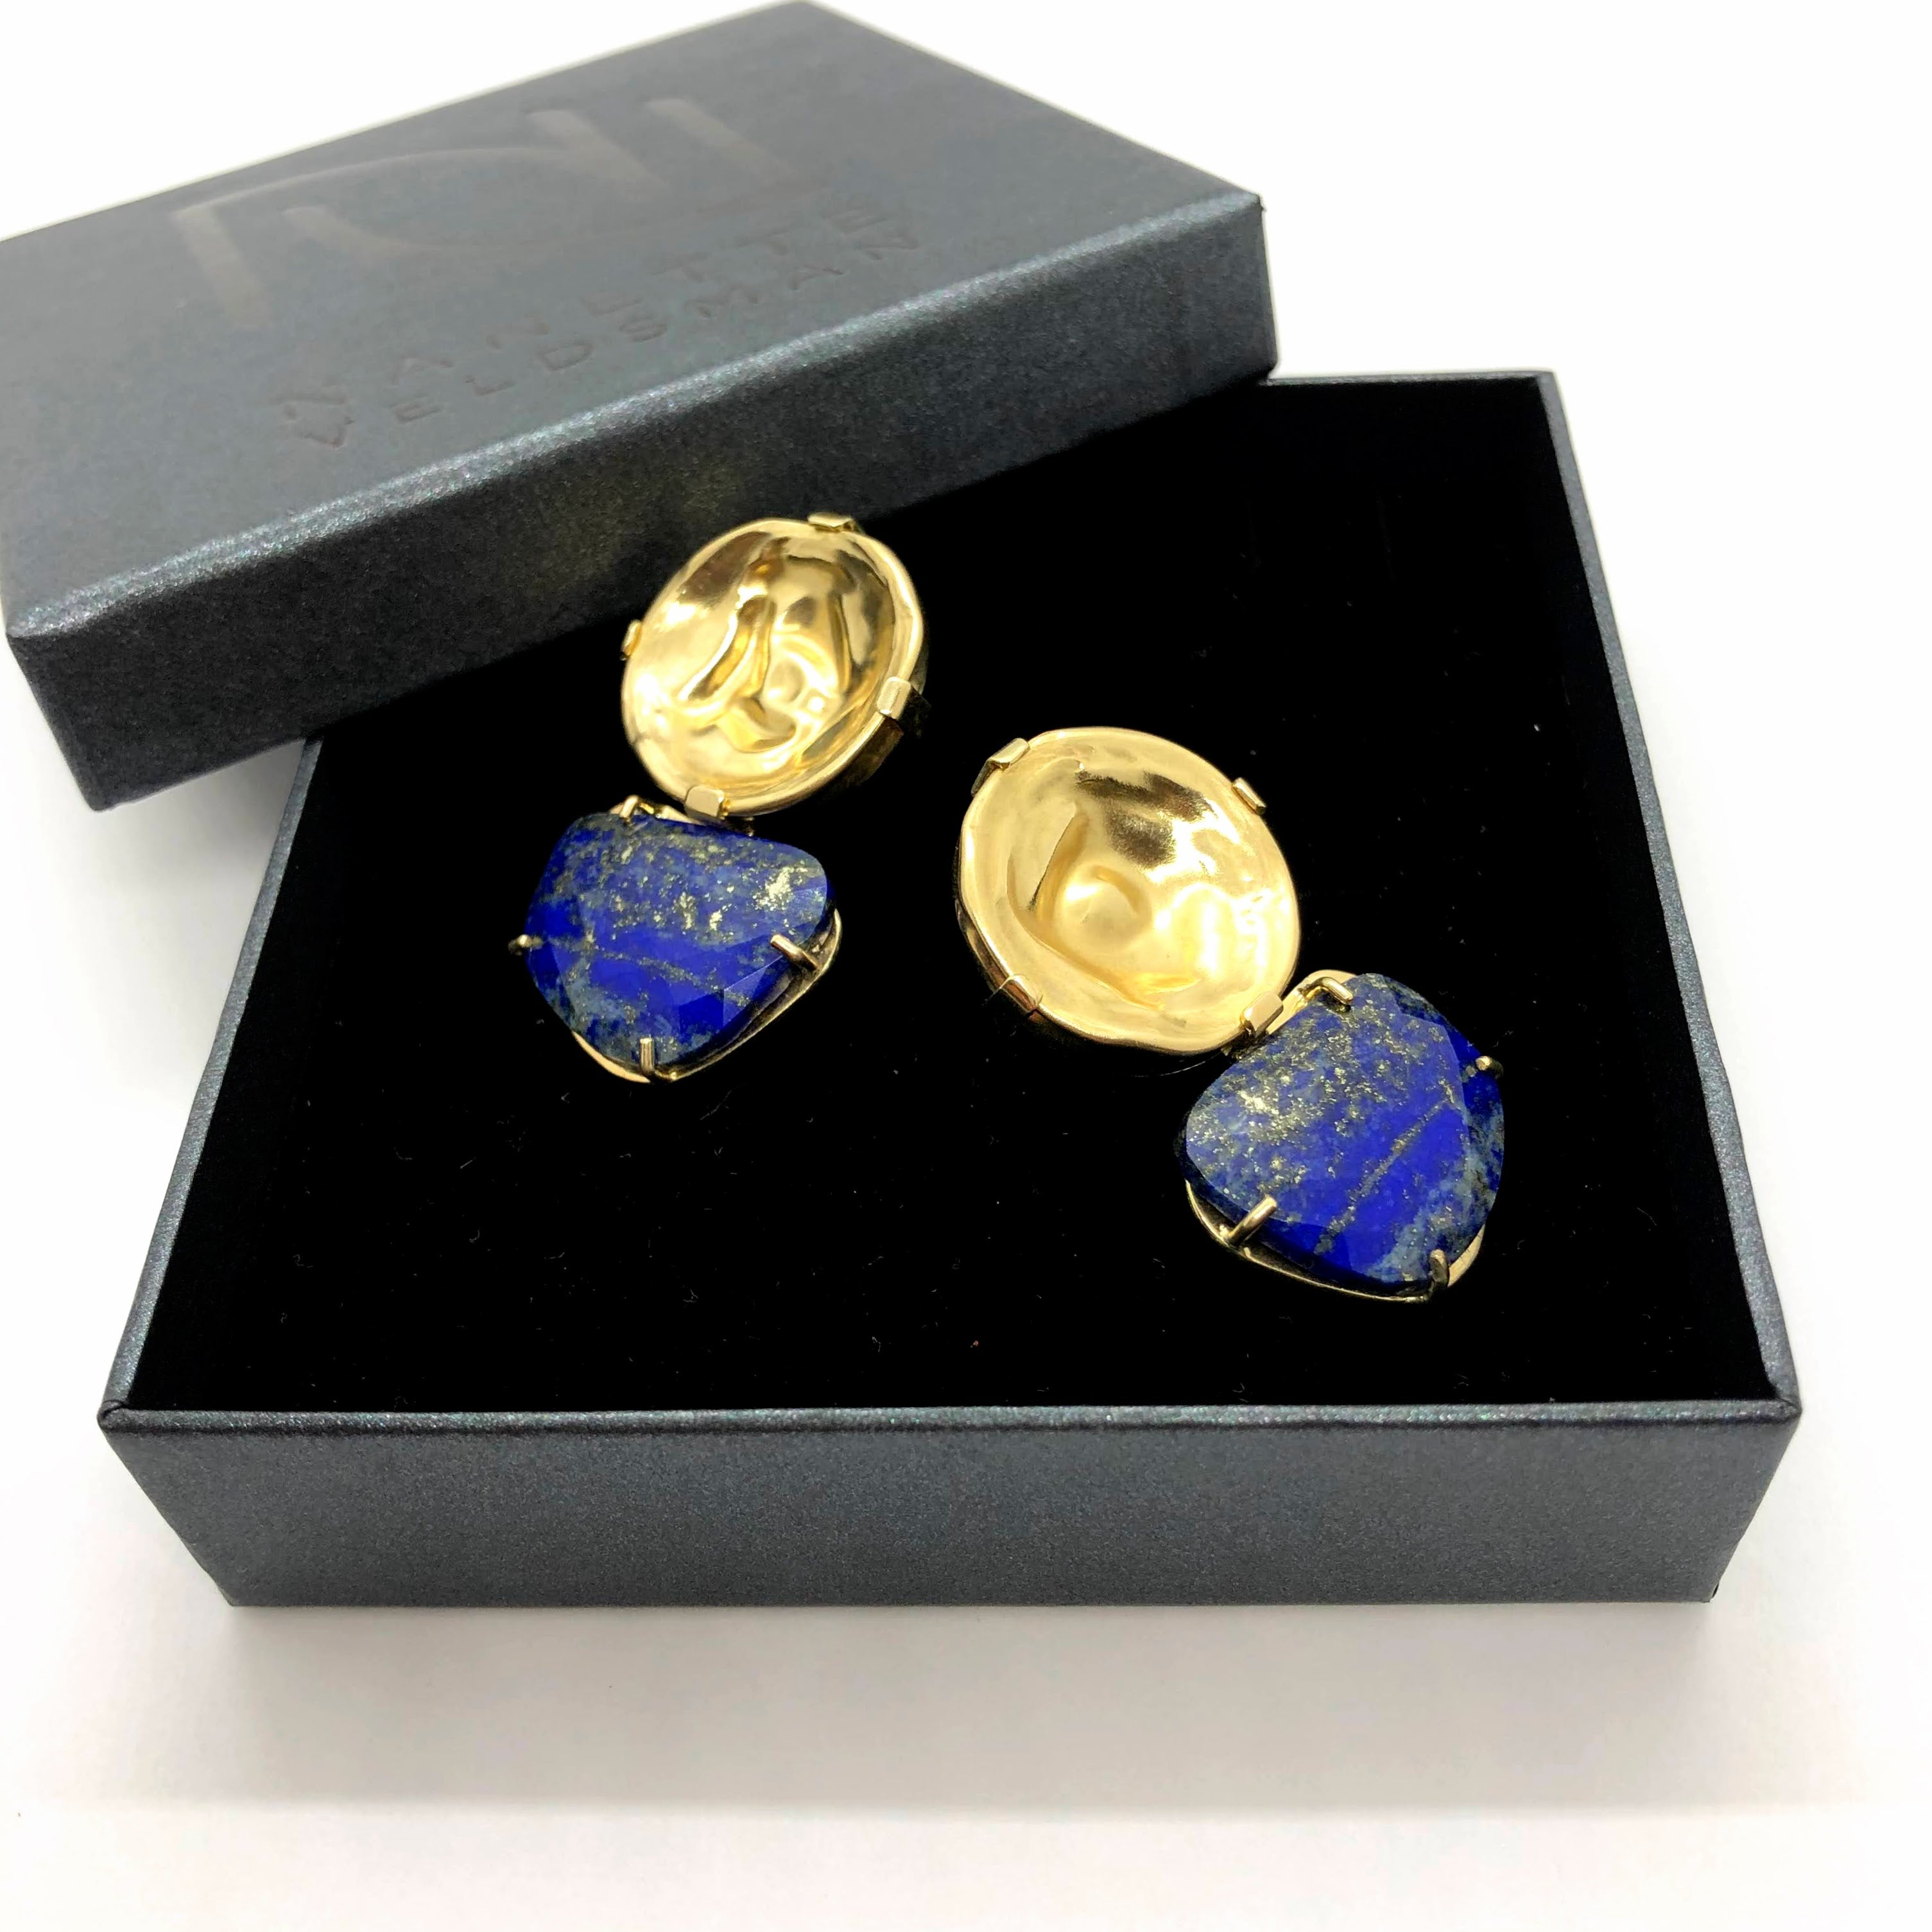 GALAXY: One of a kind Gold and Lapis Lazuli Earrings